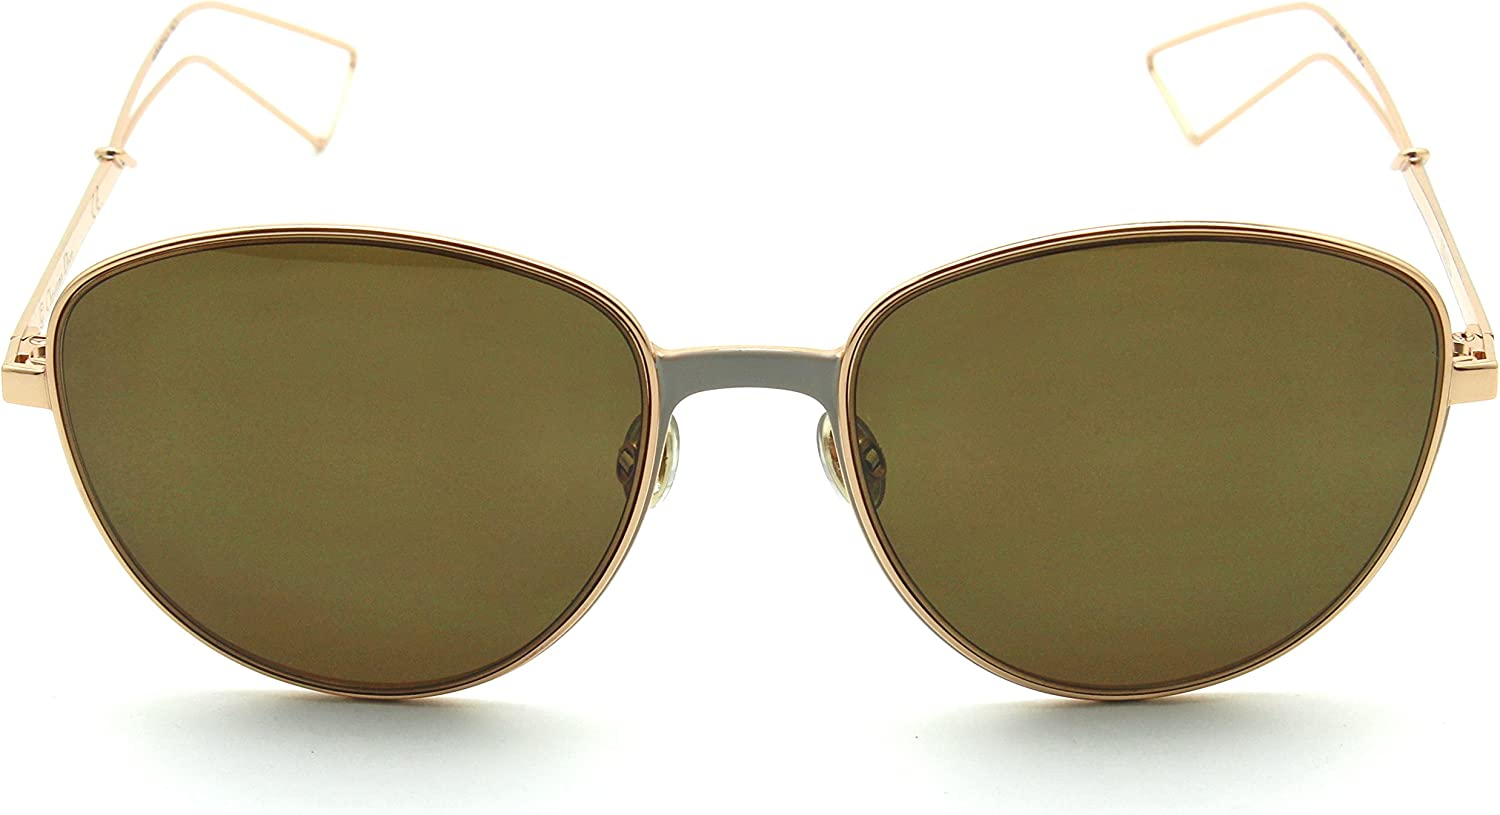 Christian Dior Ultradior S Metal Round Women Sunglasses